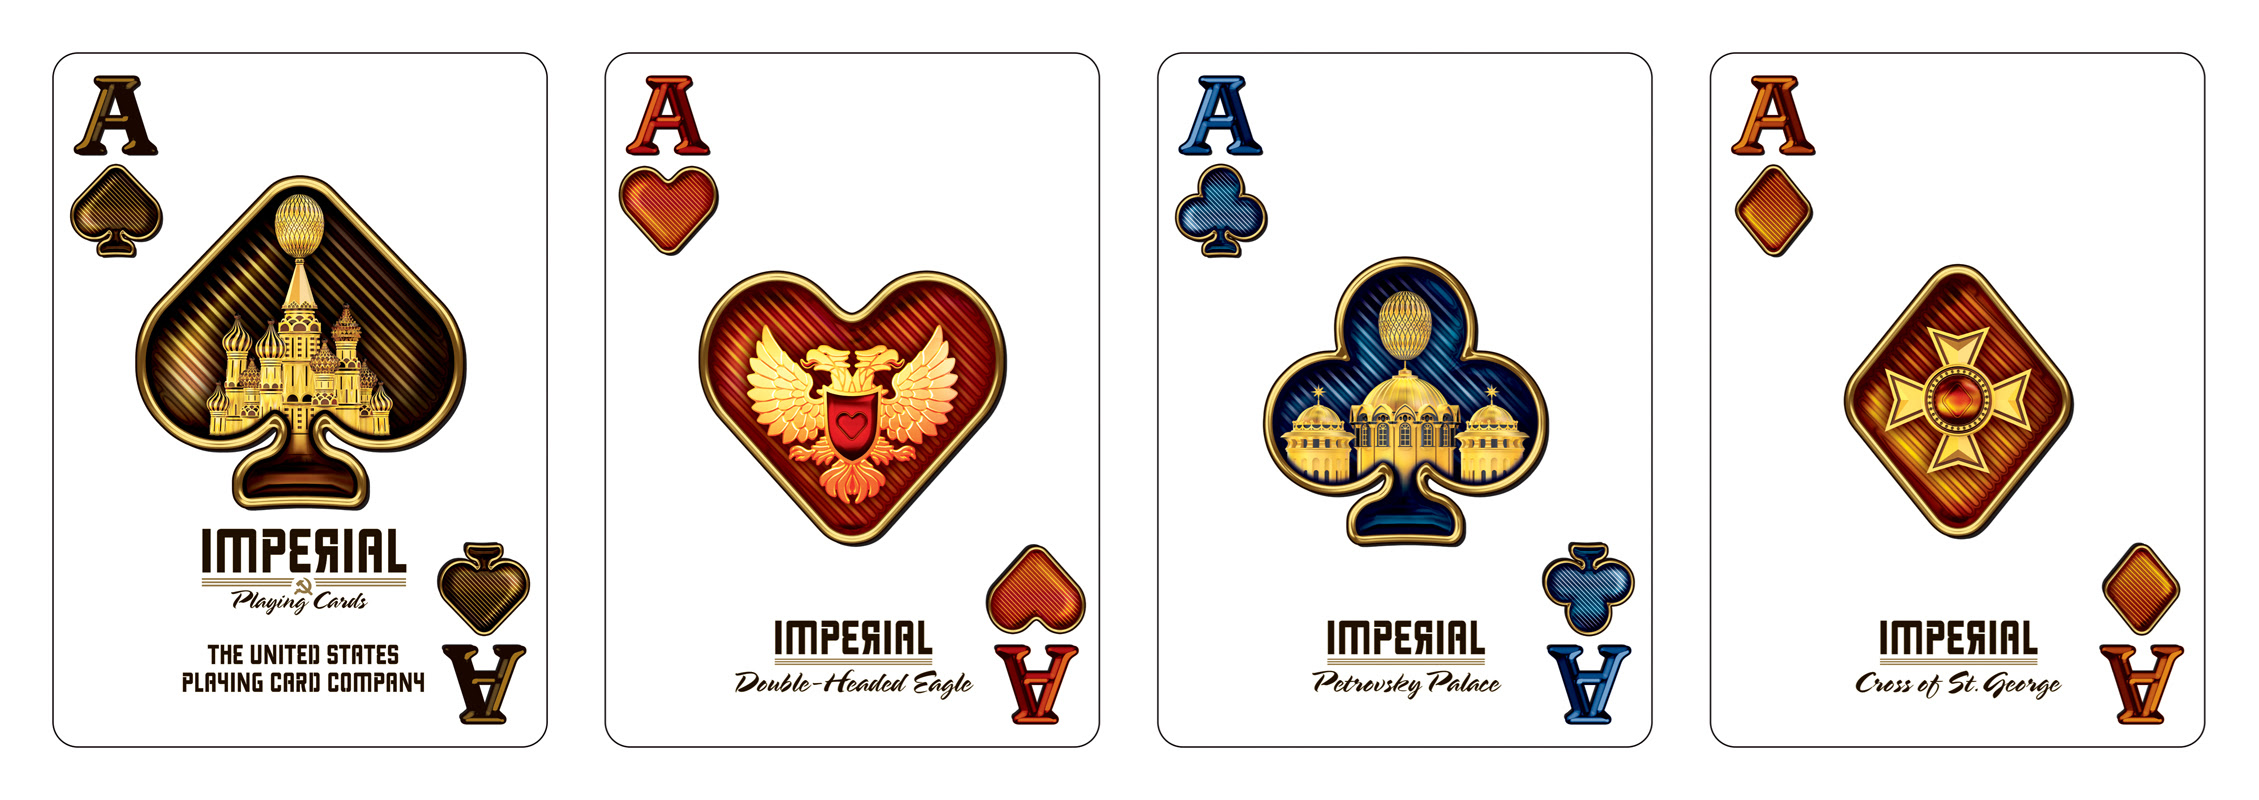 IMPERIALAces